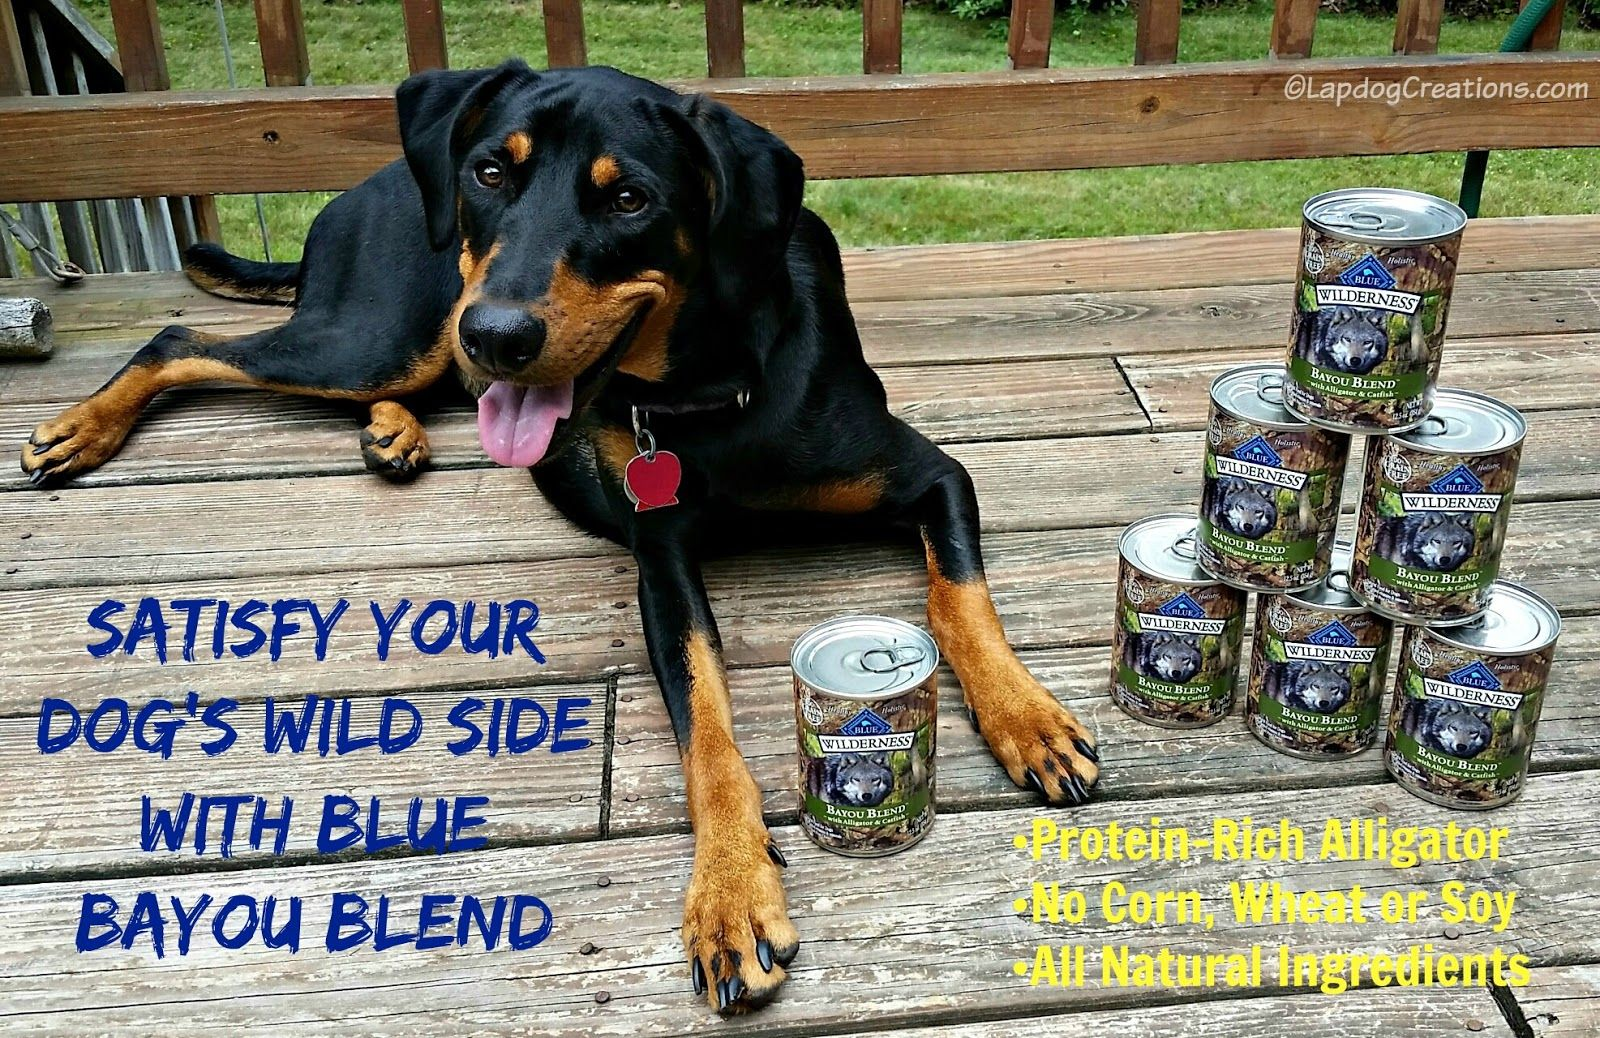 Satisfy Your Dog's Wild Side with #Blue Bayou Blend #ChewyInfluencer #DobermanMix #Alligator #DogFood ©LapdogCreations #ad